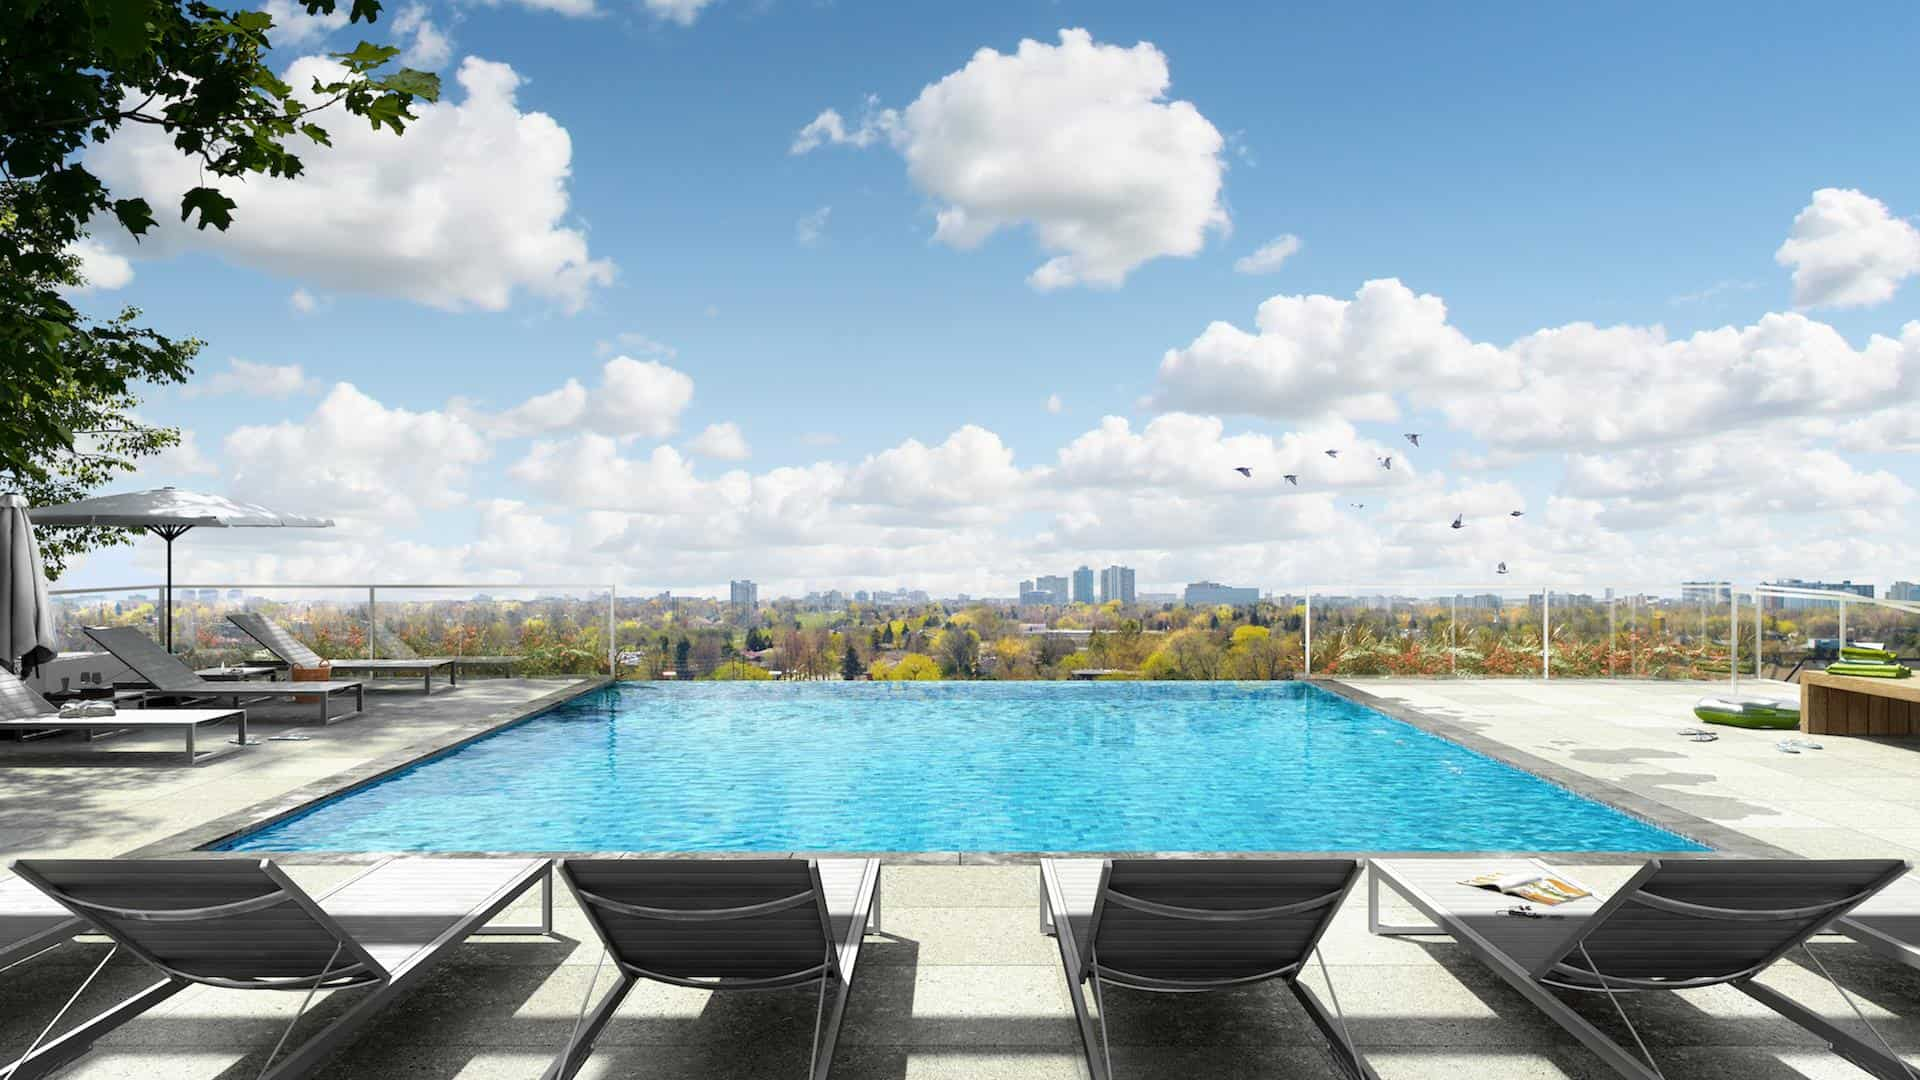 M2M Condos Pool Rendering True Condos